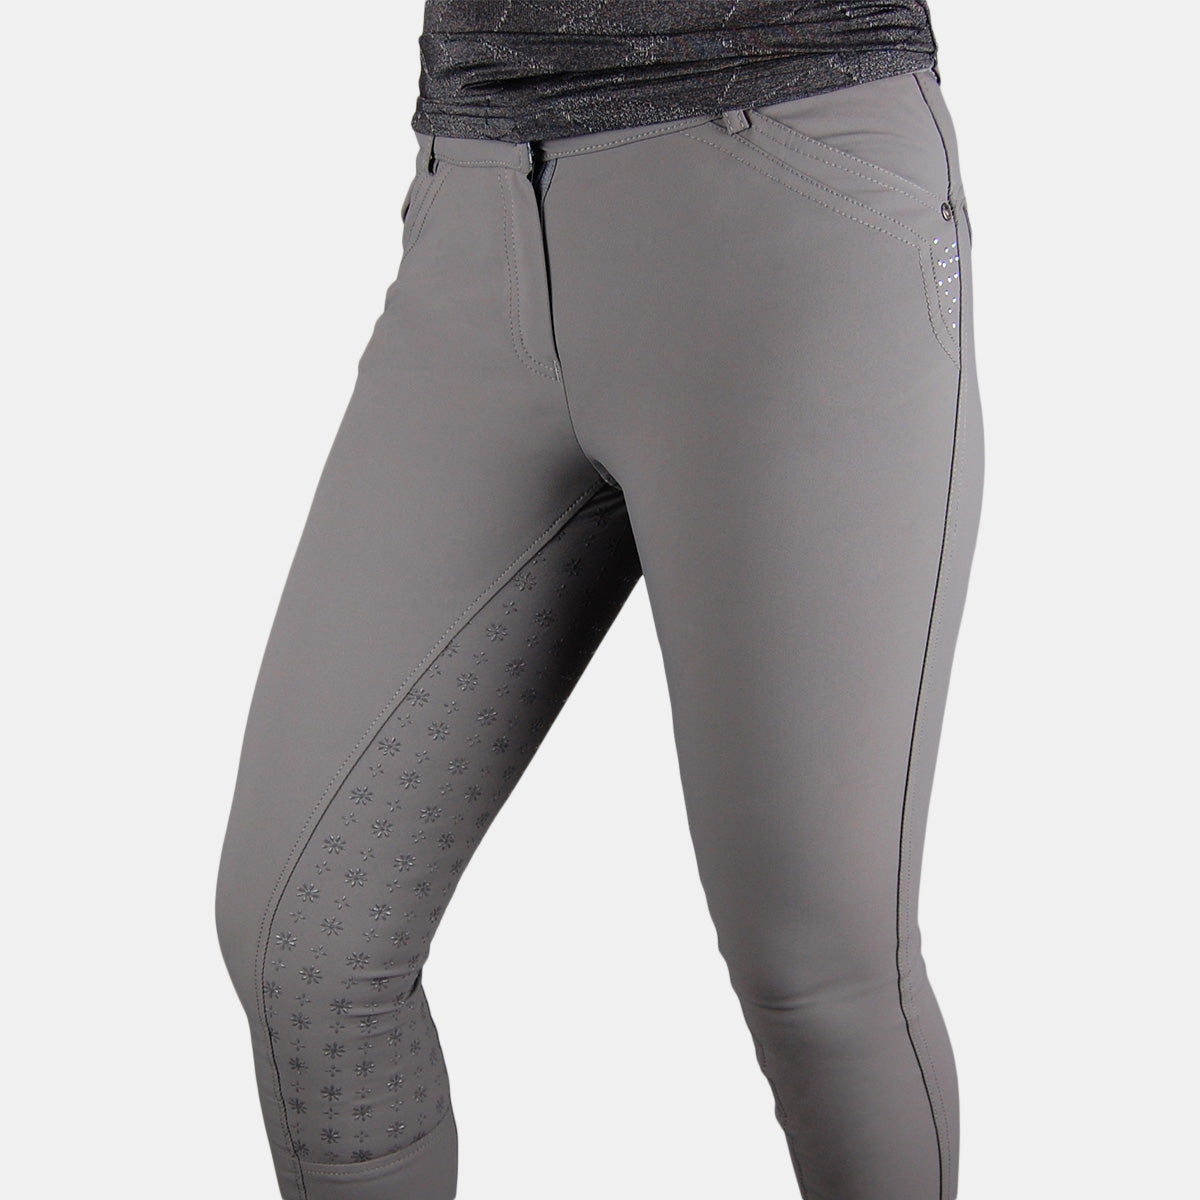 HV Polo Lucilla FSS Breeches in Pewter